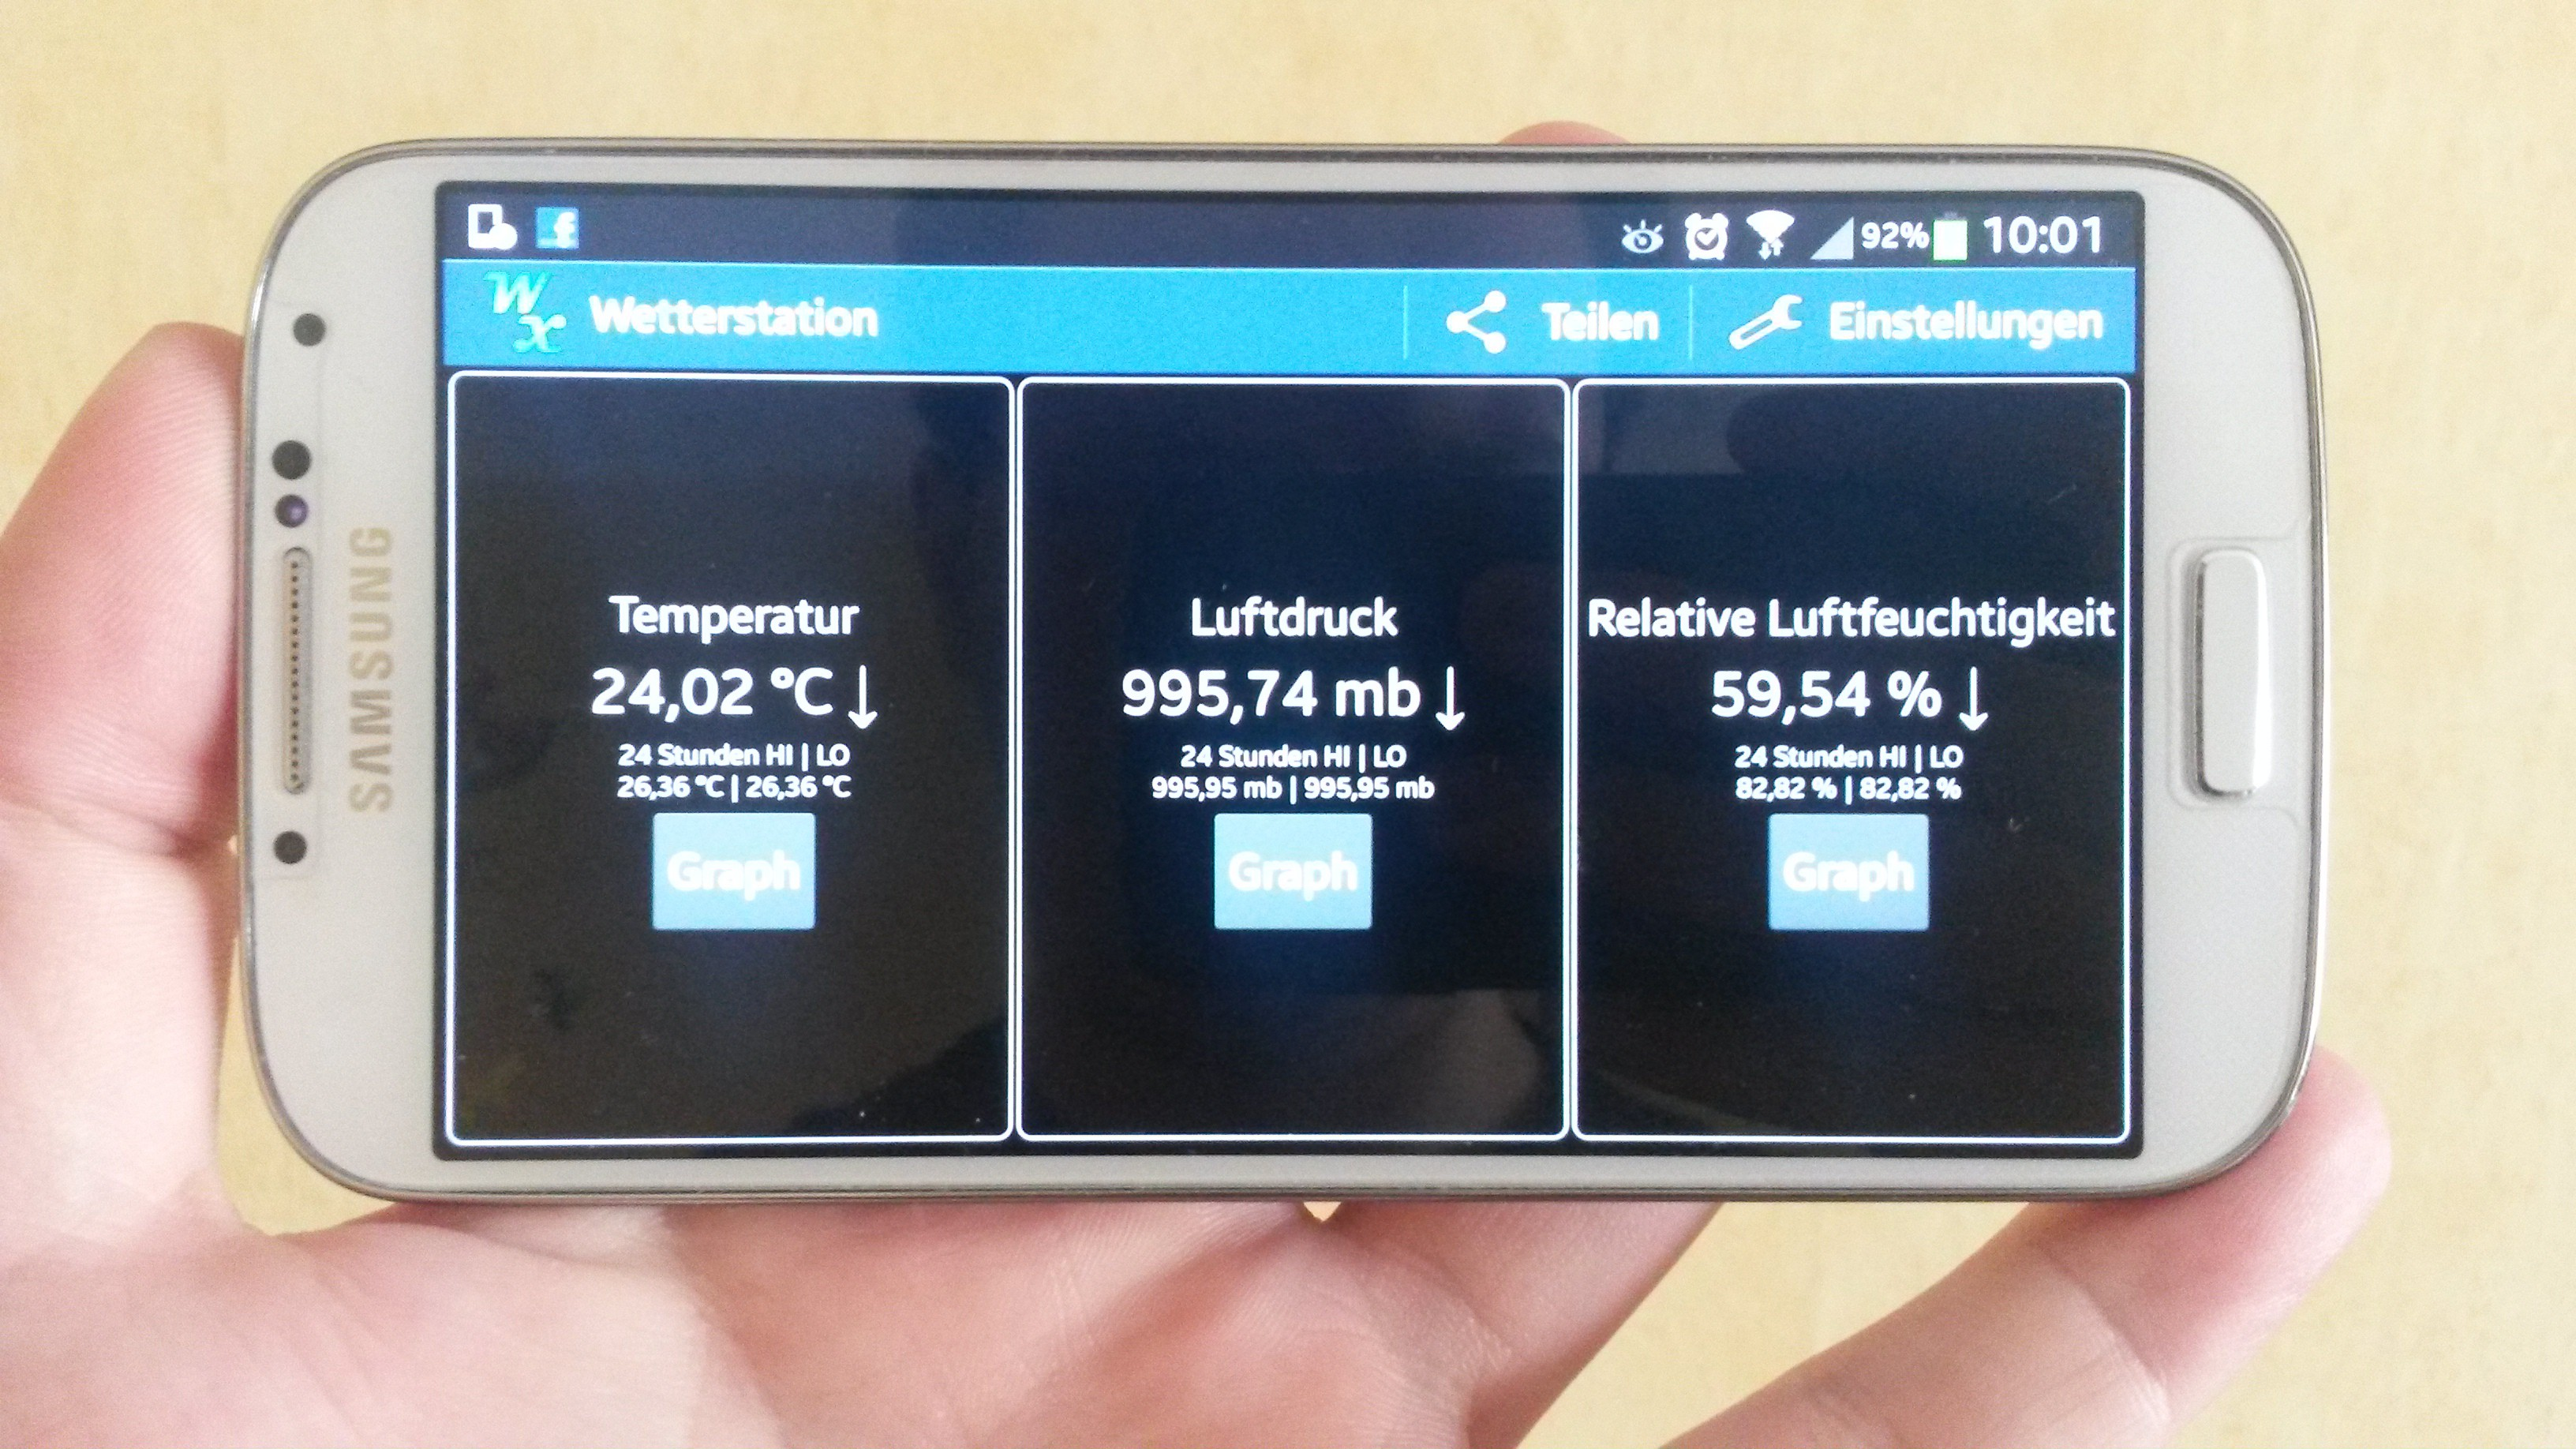 Samsung Galaxy S4 mit Android-App Weather Station geöffnet